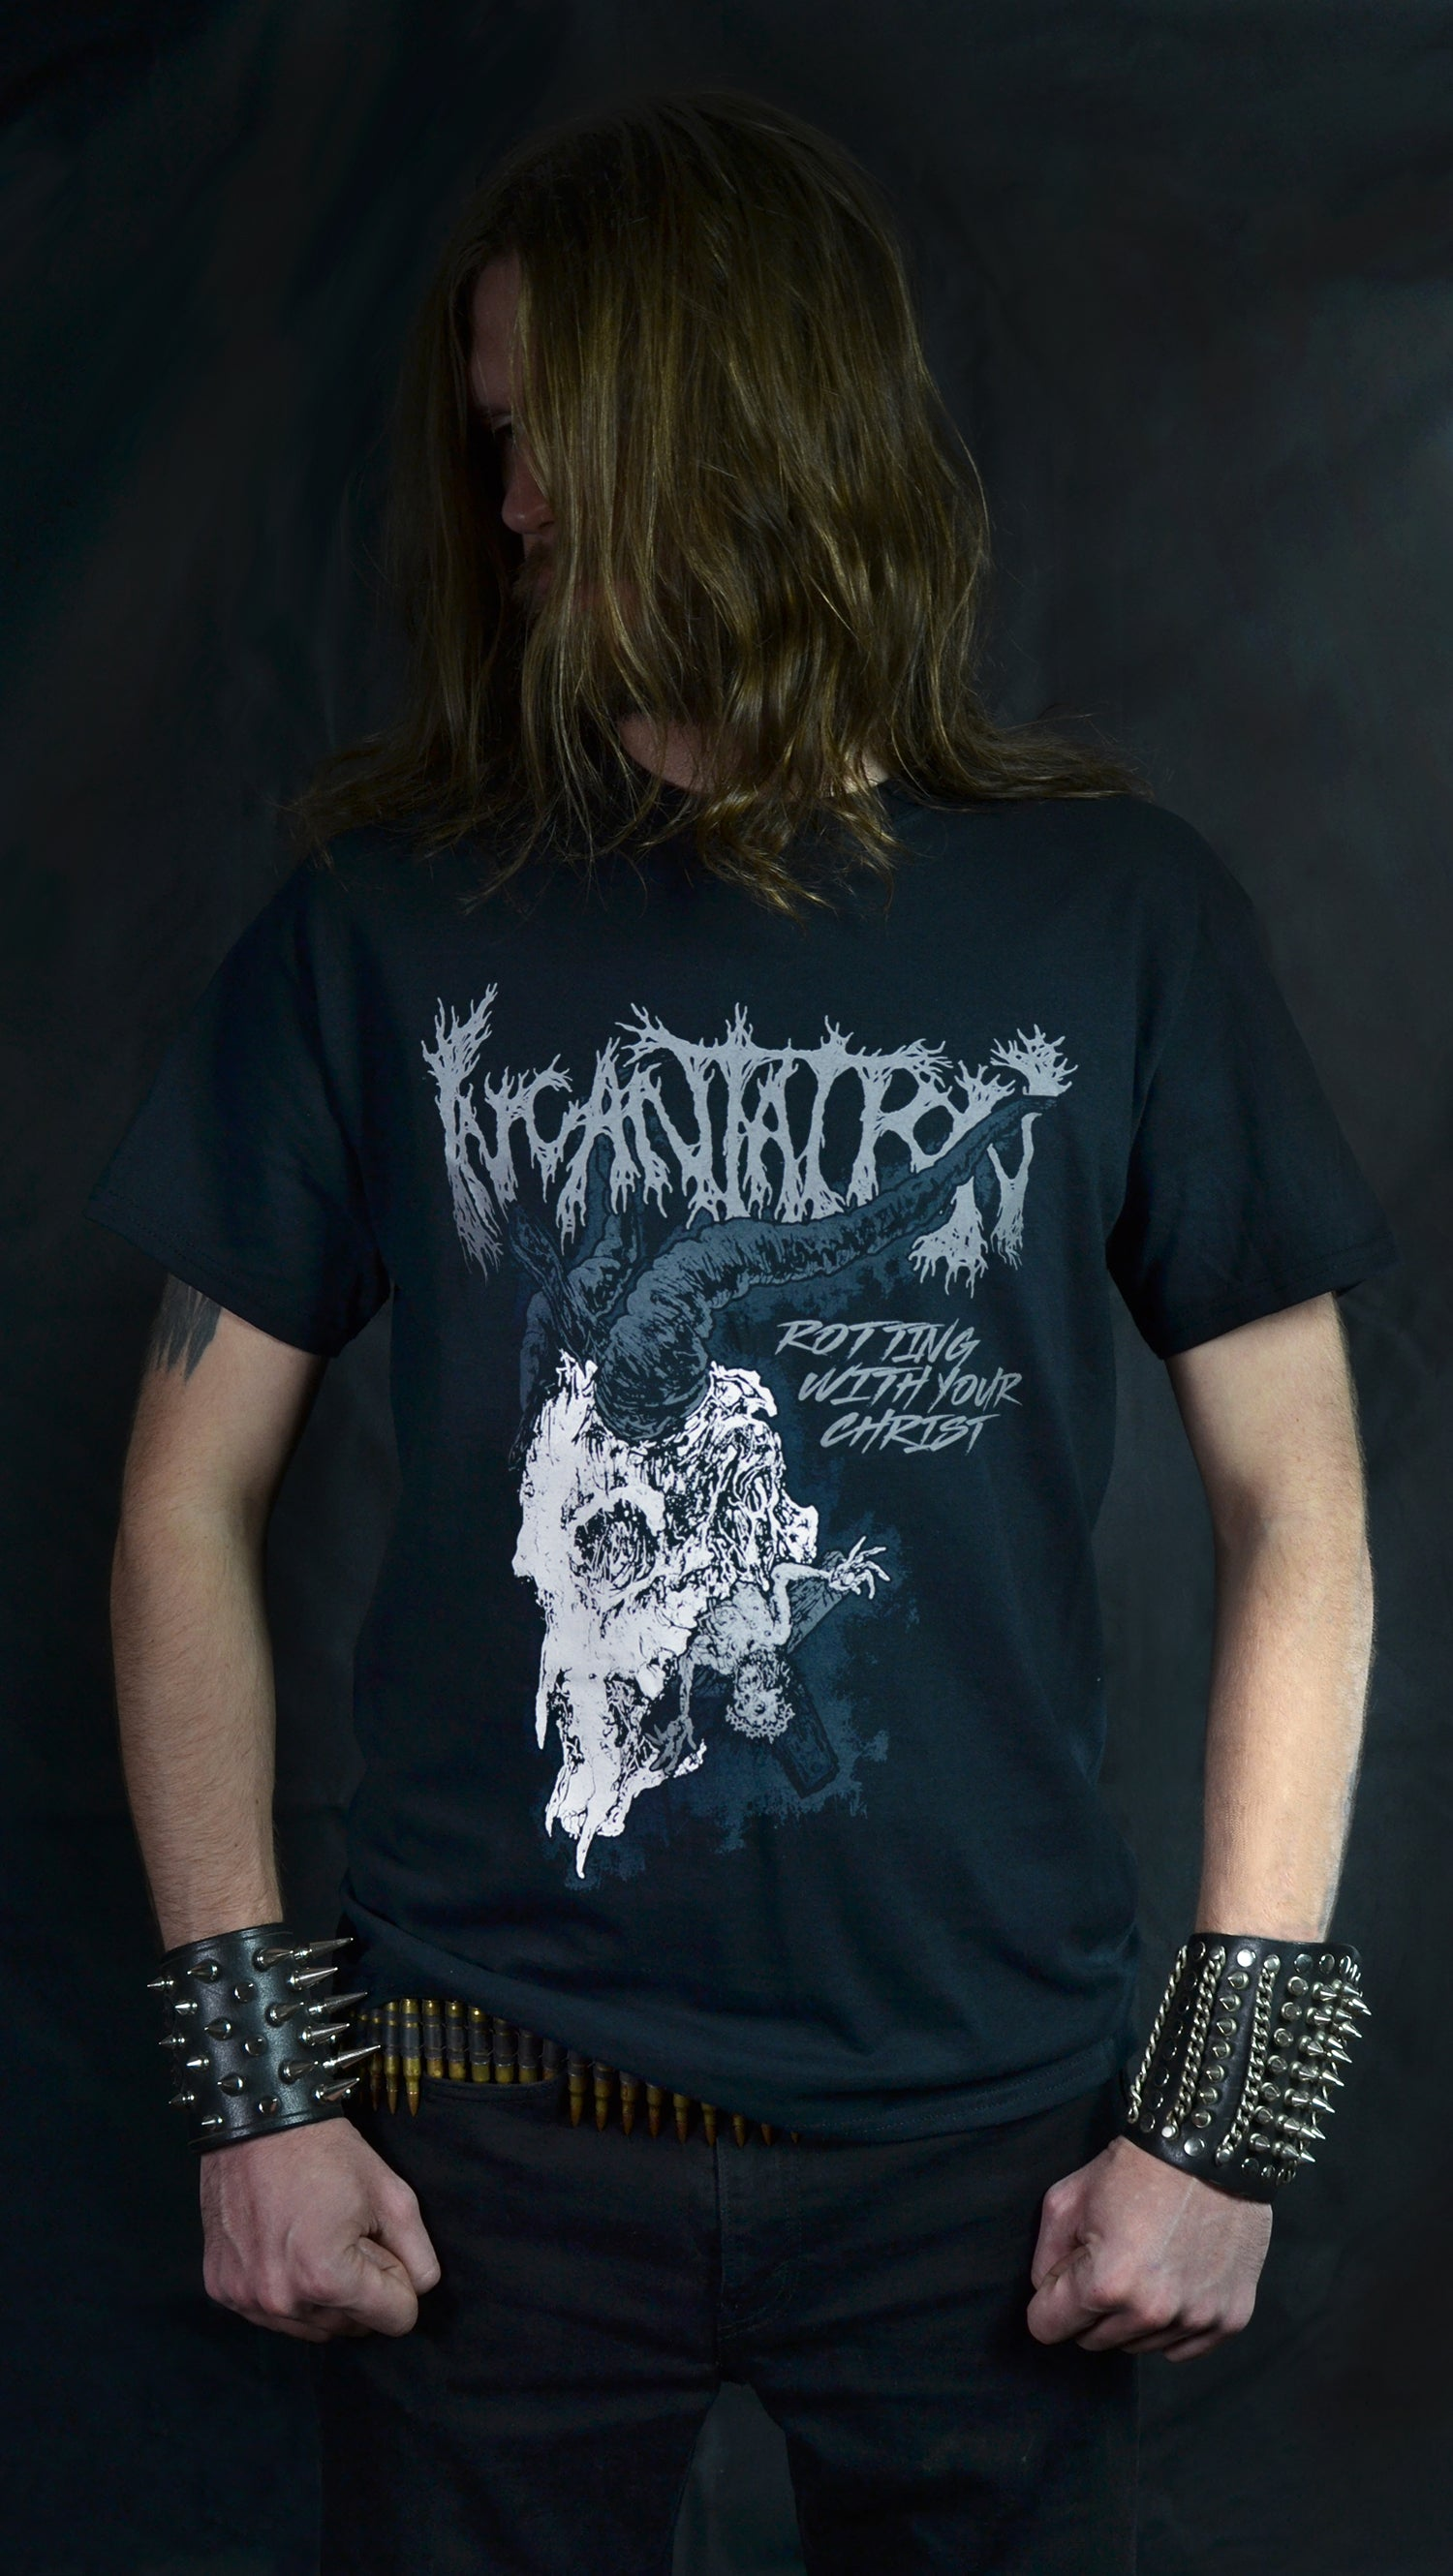 INCANTATION -  Rotting Christ Tour 2019  (T-SHIRT)